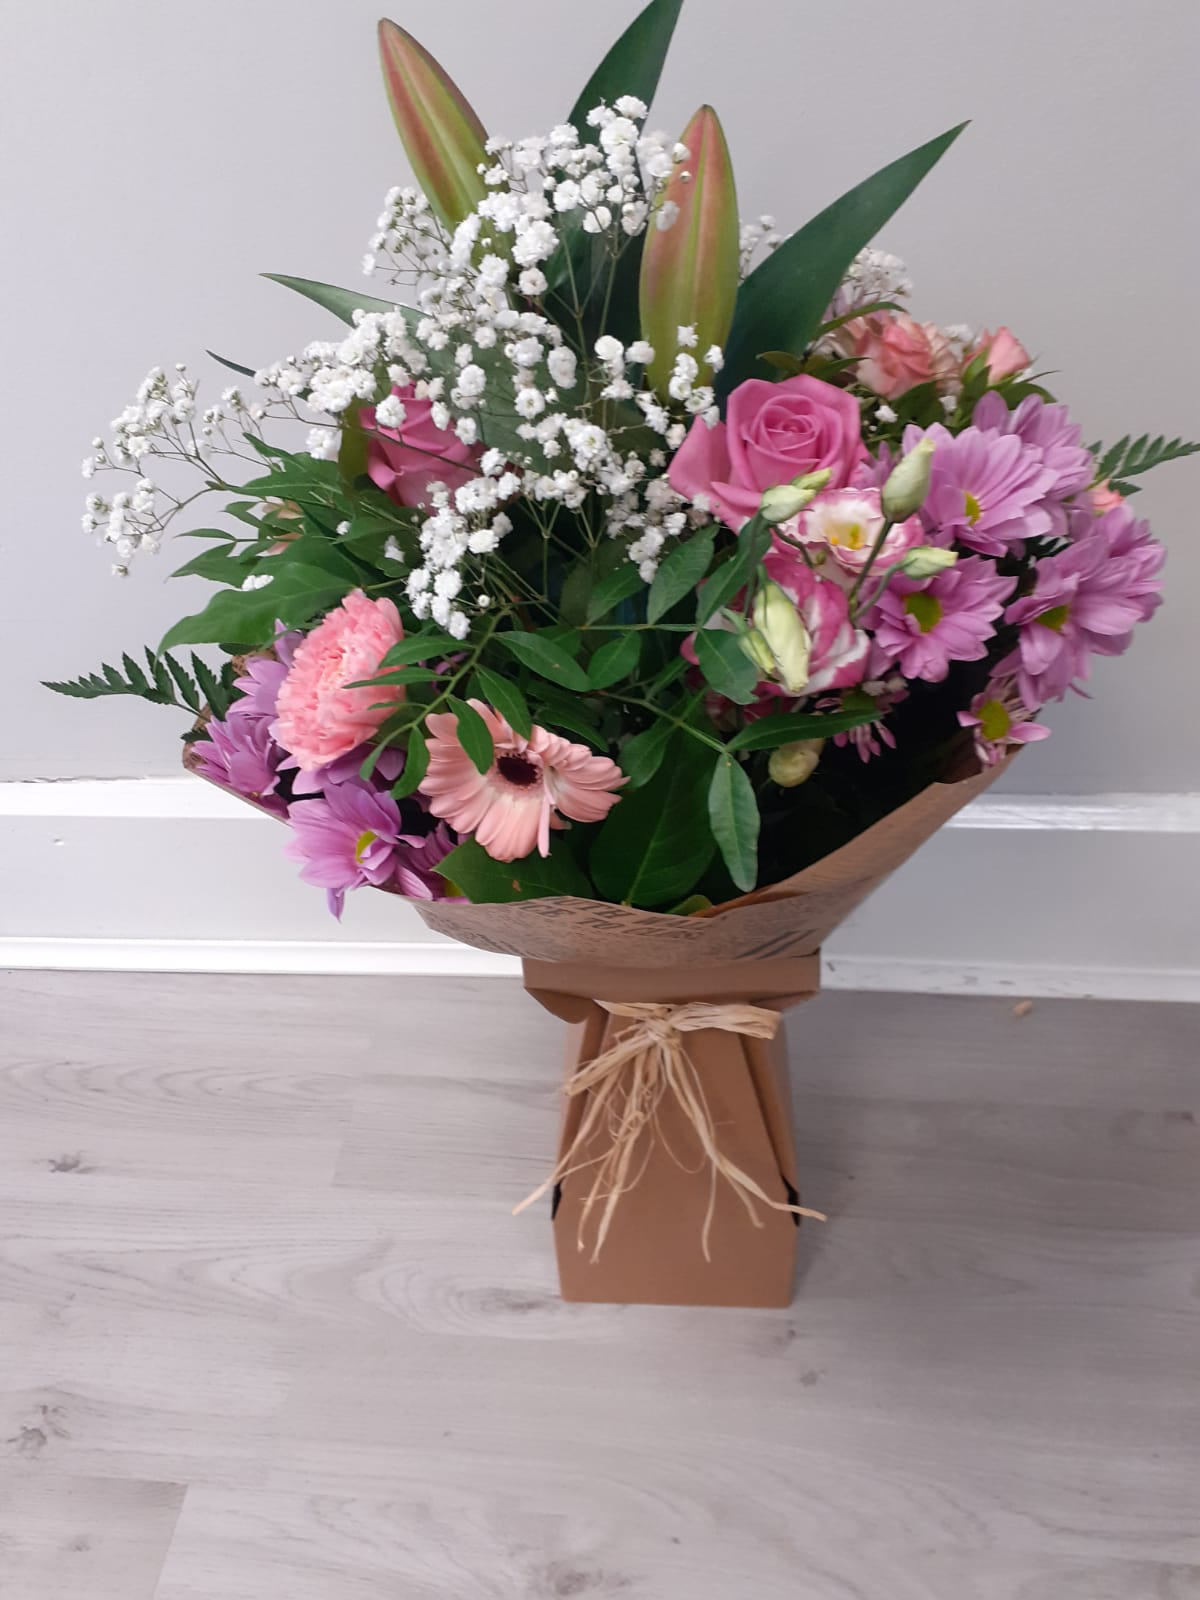 The Florist Choice Bouquet €50